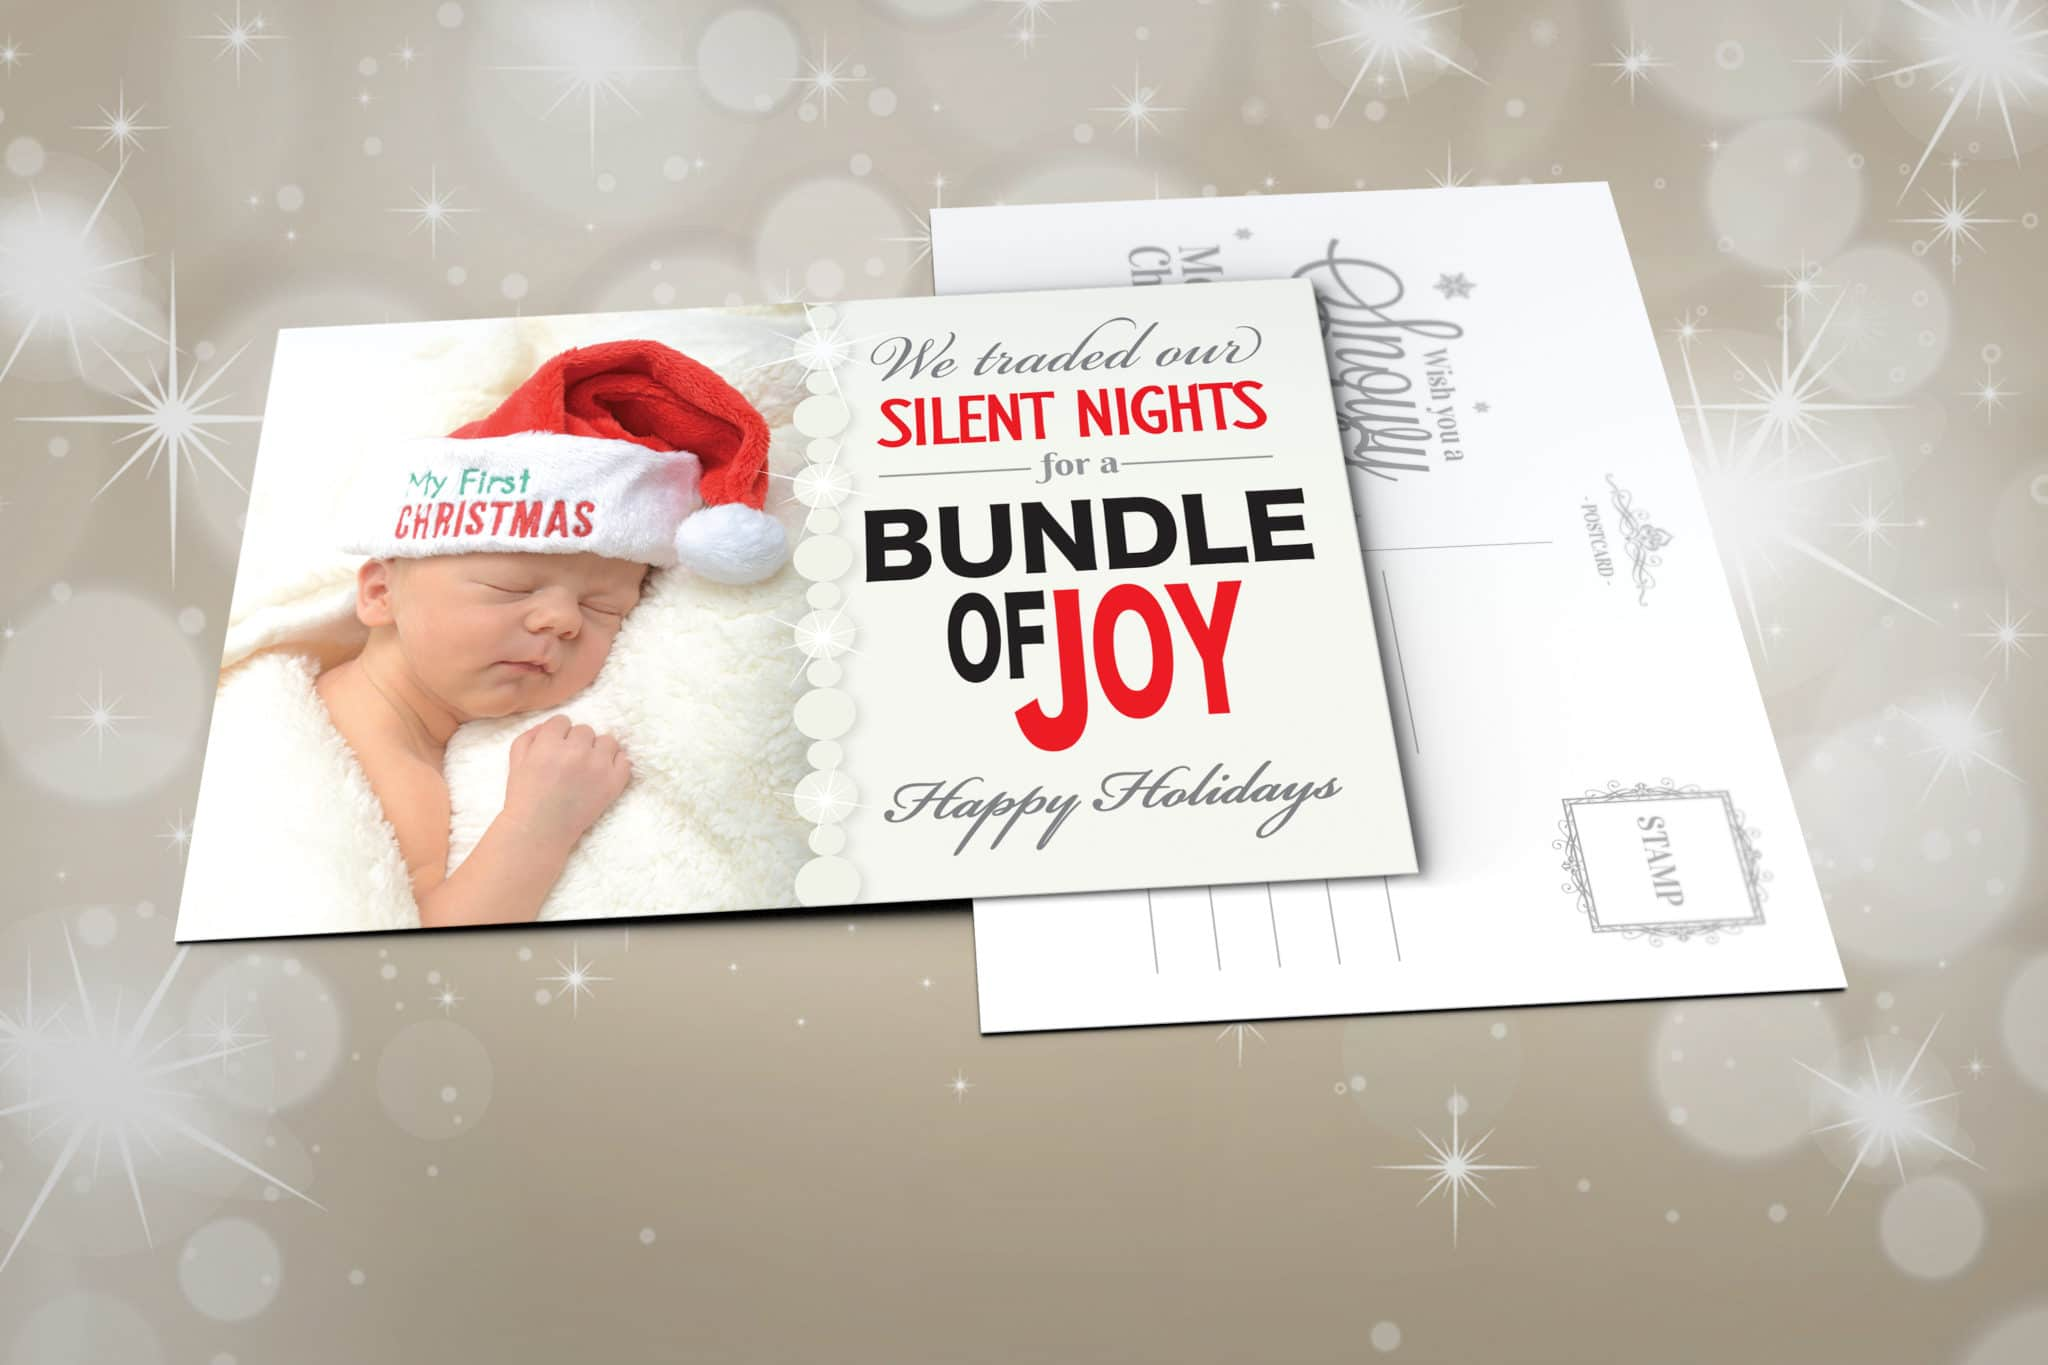 Christmas Cards with Baby Sleeping on Soft Blanket